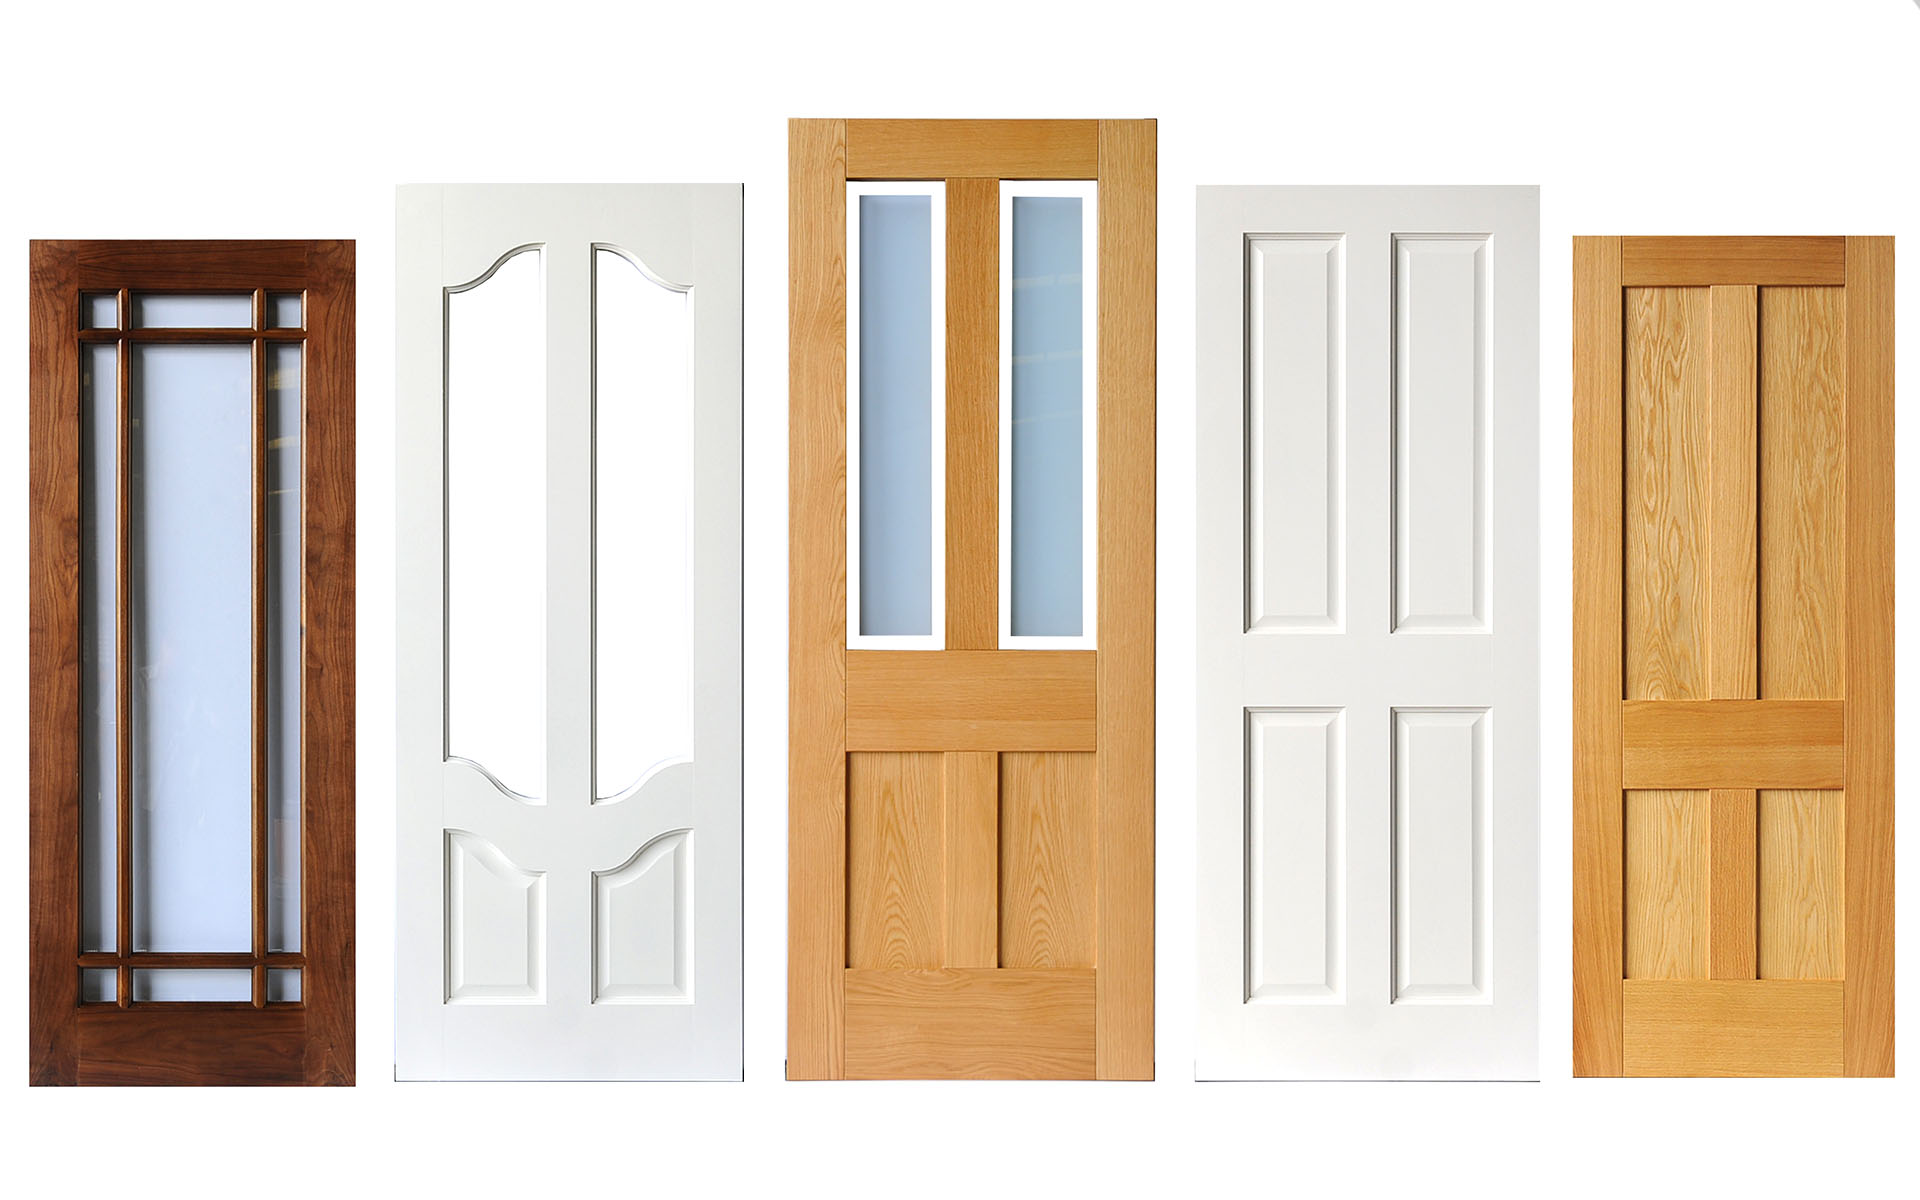 1200 #A06F2B Doors Direct Doors Dublin Garage Doors Internal Doors Wooden  image Overhead Doors Direct 38431920